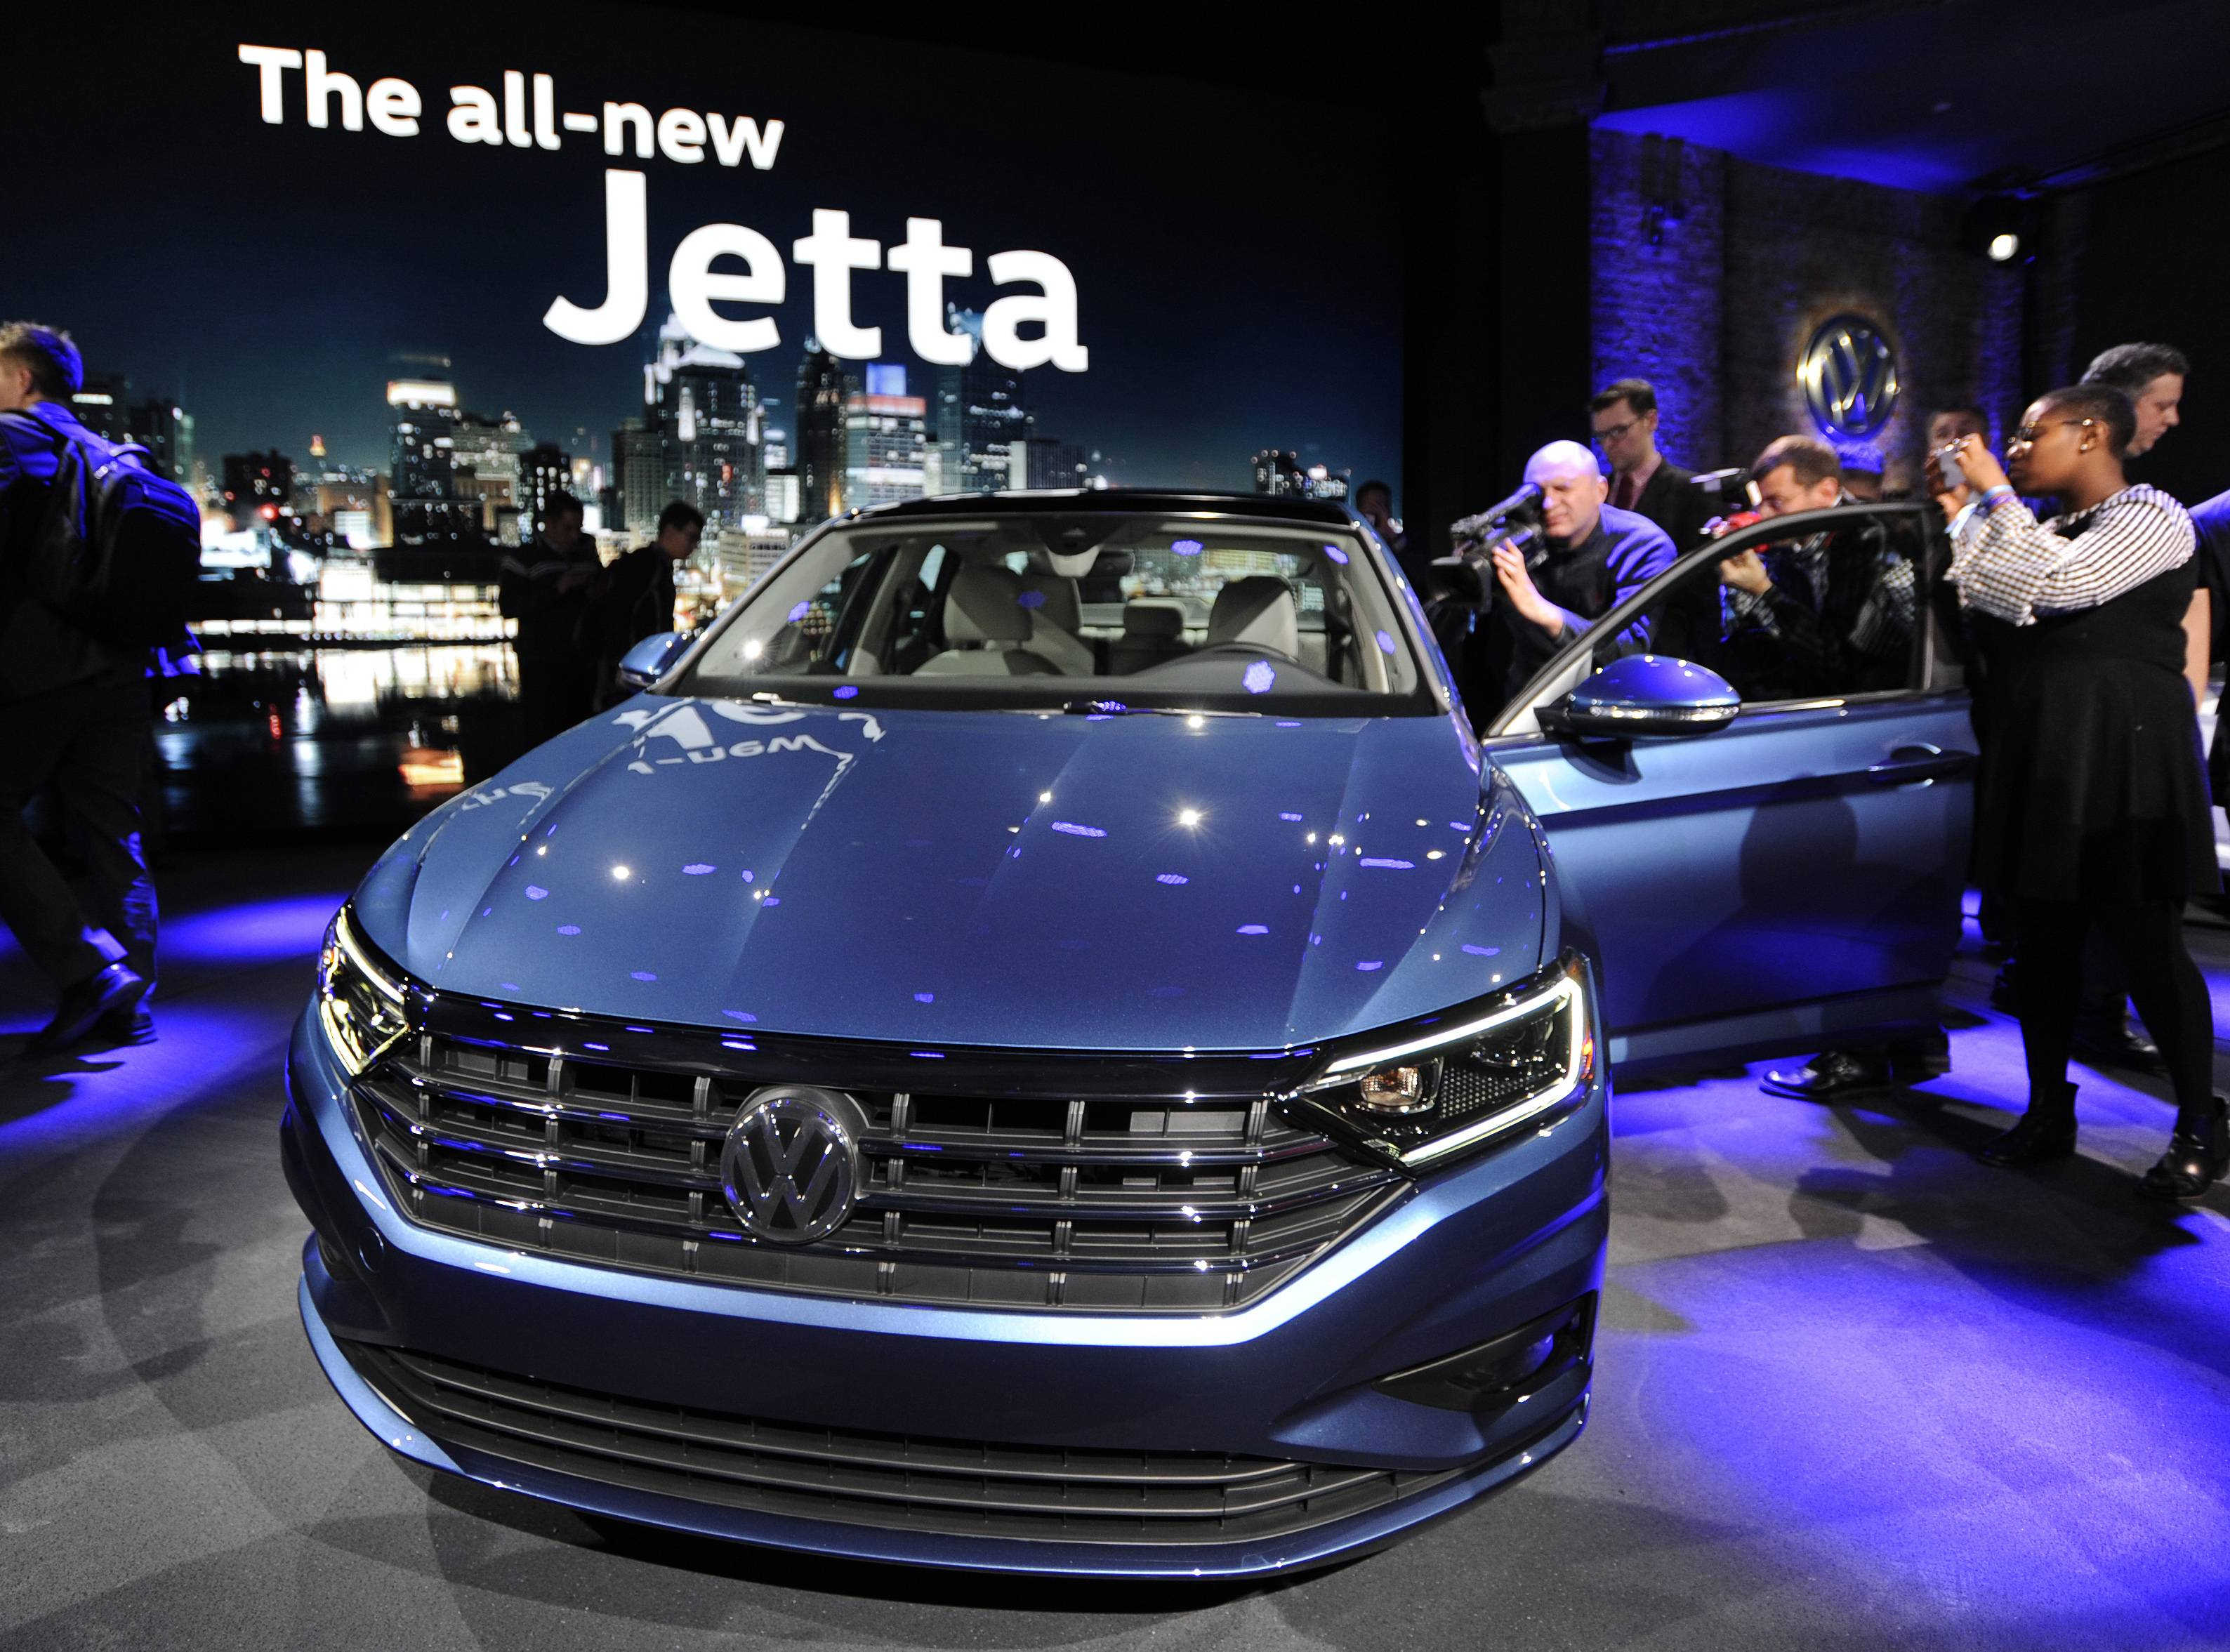 Following a news conference, members of the media photograph the 2019 Volkswagen Jetta at the North American International Auto Show.